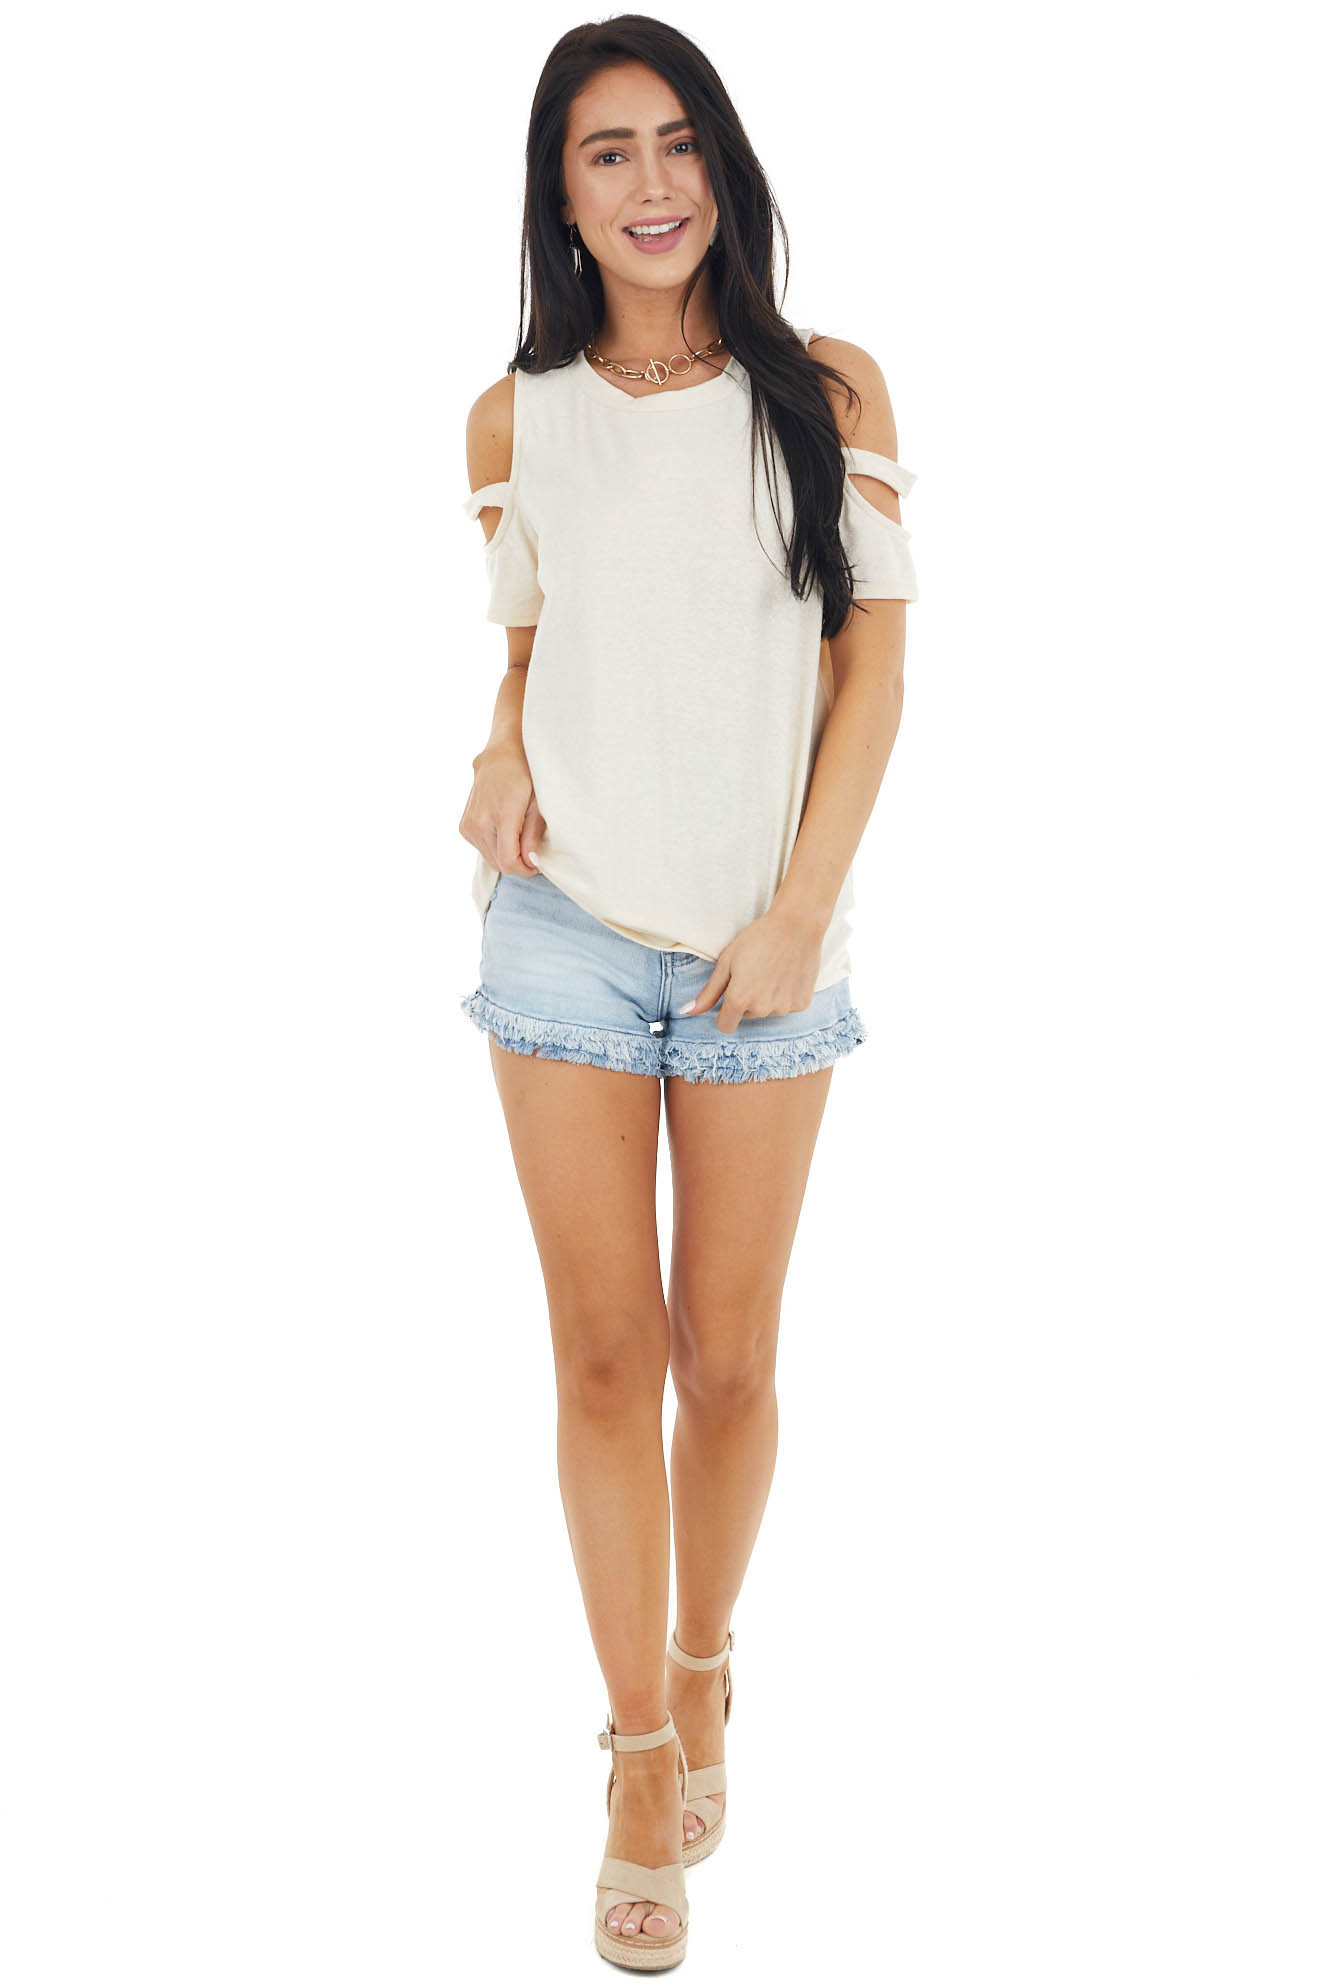 Vanilla Short Sleeve Stretchy Knit Top with Cold Shoulder